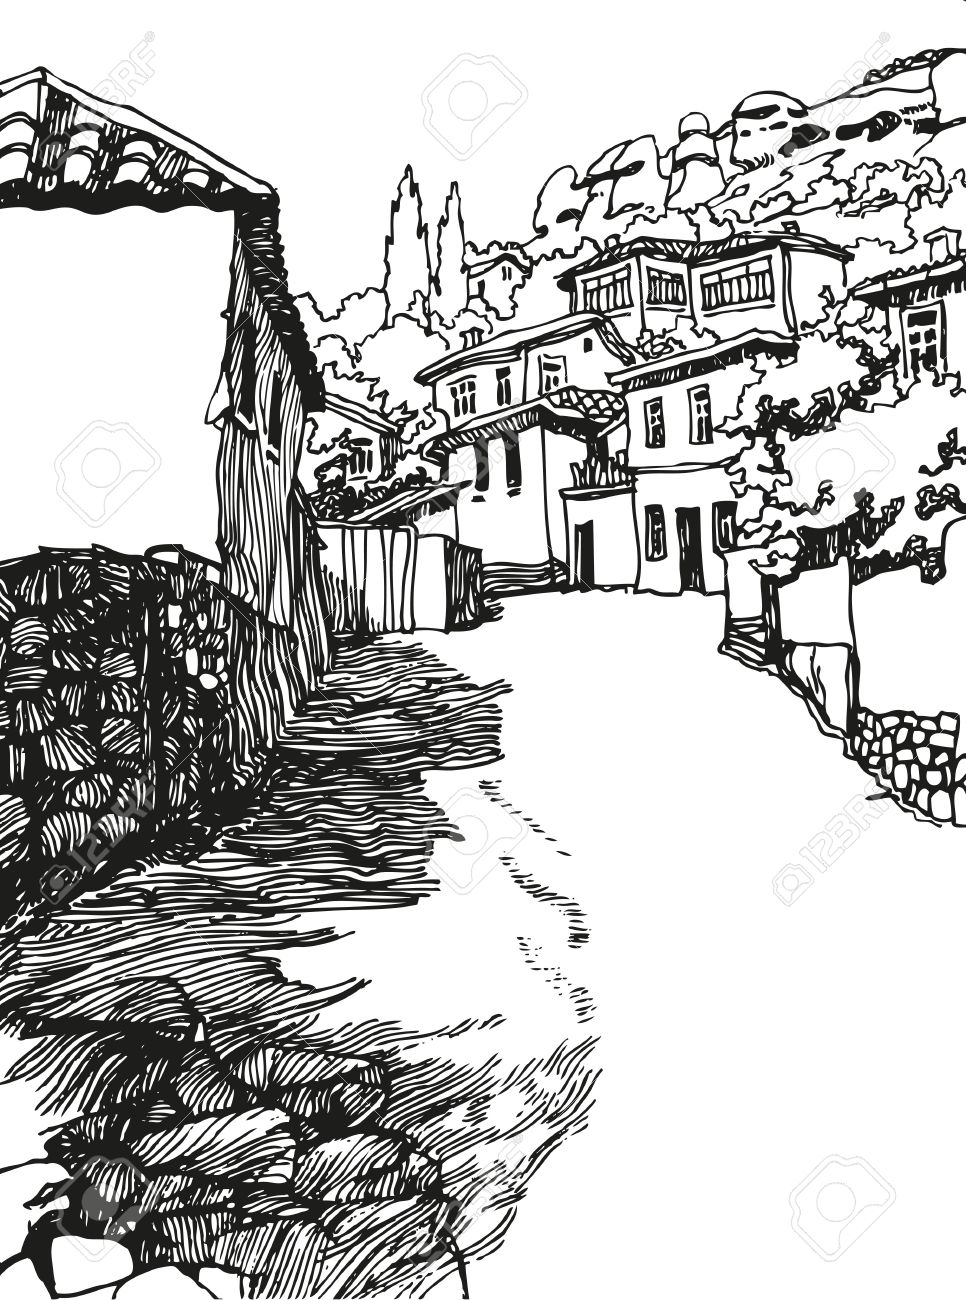 Illustration Of The Black And White Design Old City Sketch Hand Drawn